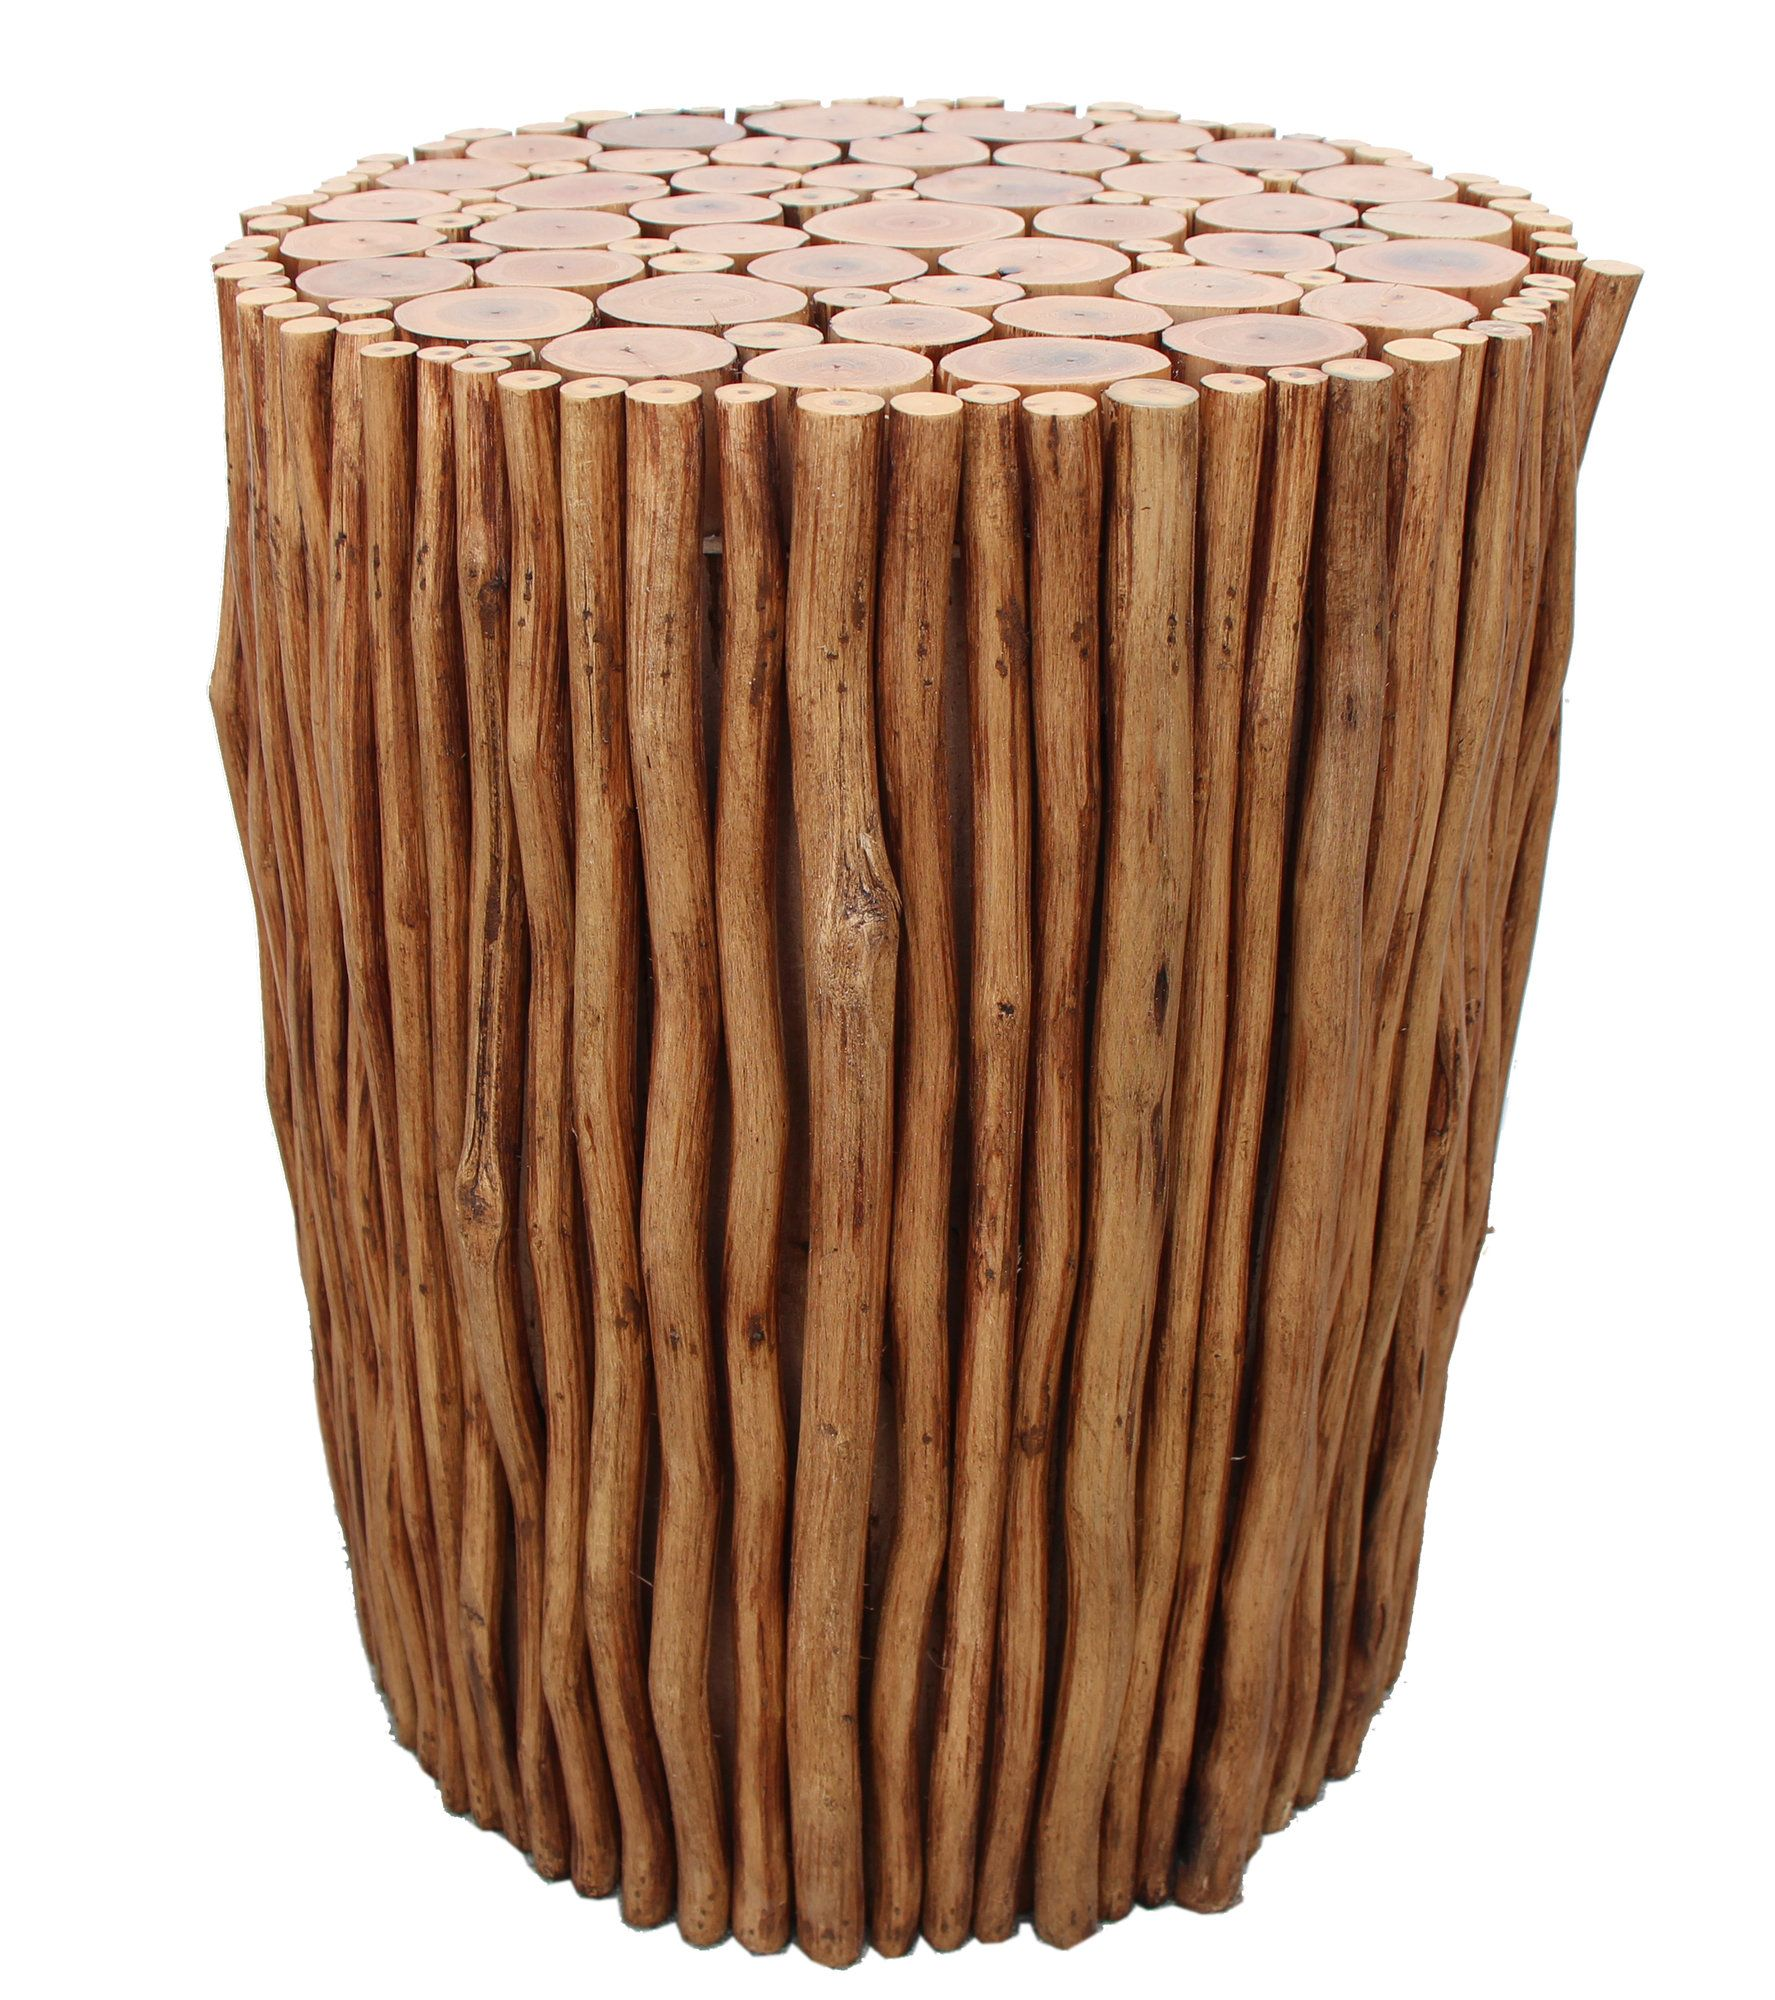 Solid Wood Accent Stool Asian Home Decor Wood Stool Wood Accents